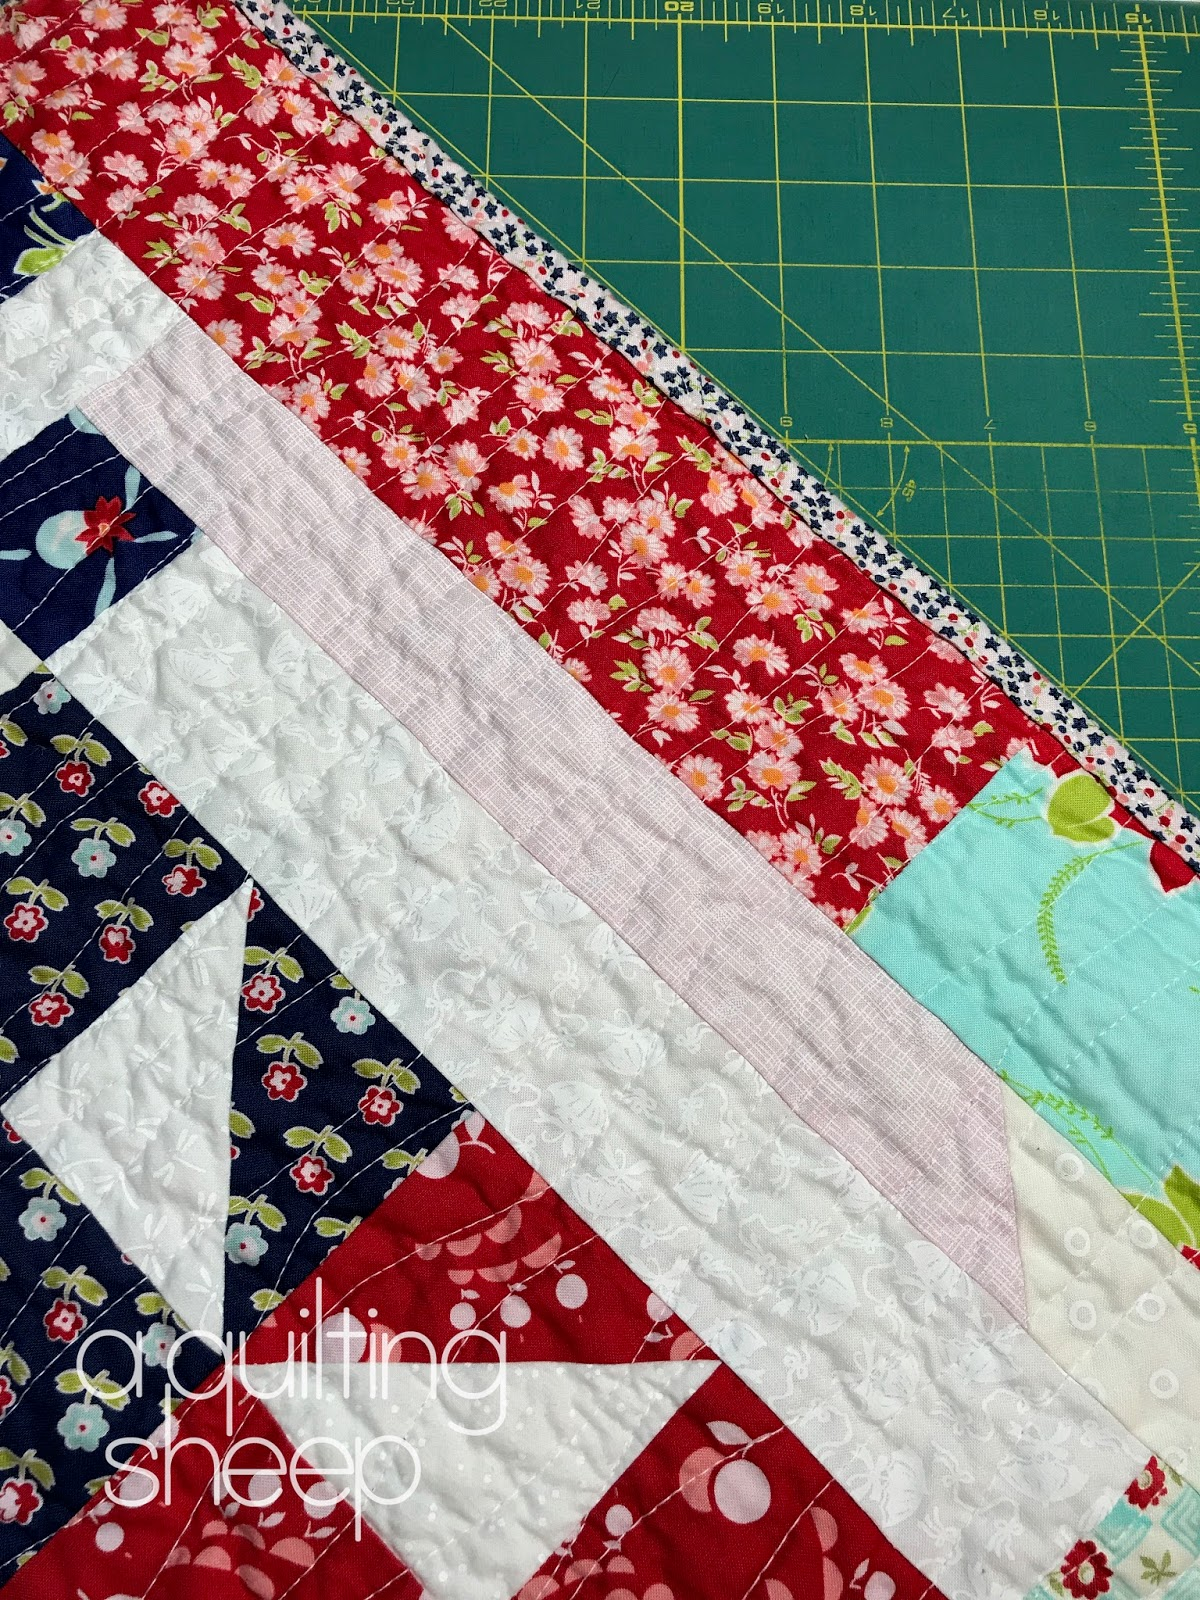 A Quilting Sheep : red red bobbin quilt shop - Adamdwight.com